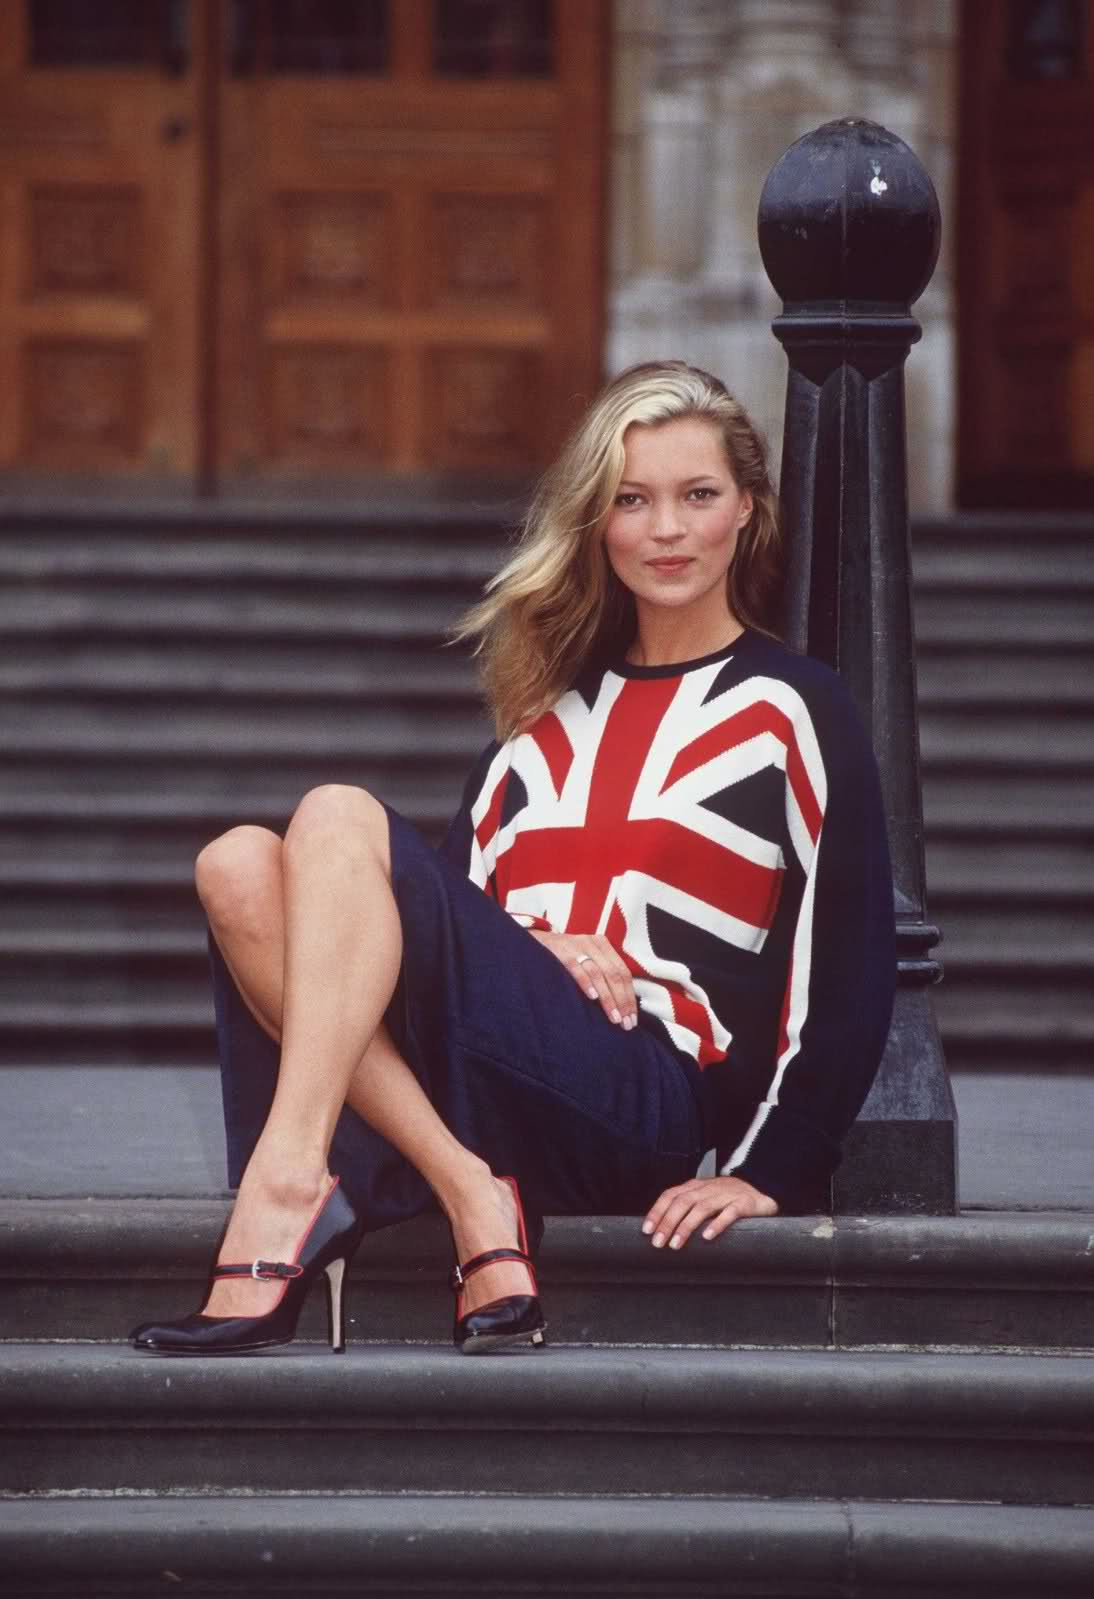 Kate Moss wearing Clements Ribeiro Union Jack sweater photographed by Richard Chambury at the start of London fashion week in September 1997 / via fashioned by love british fashion blog